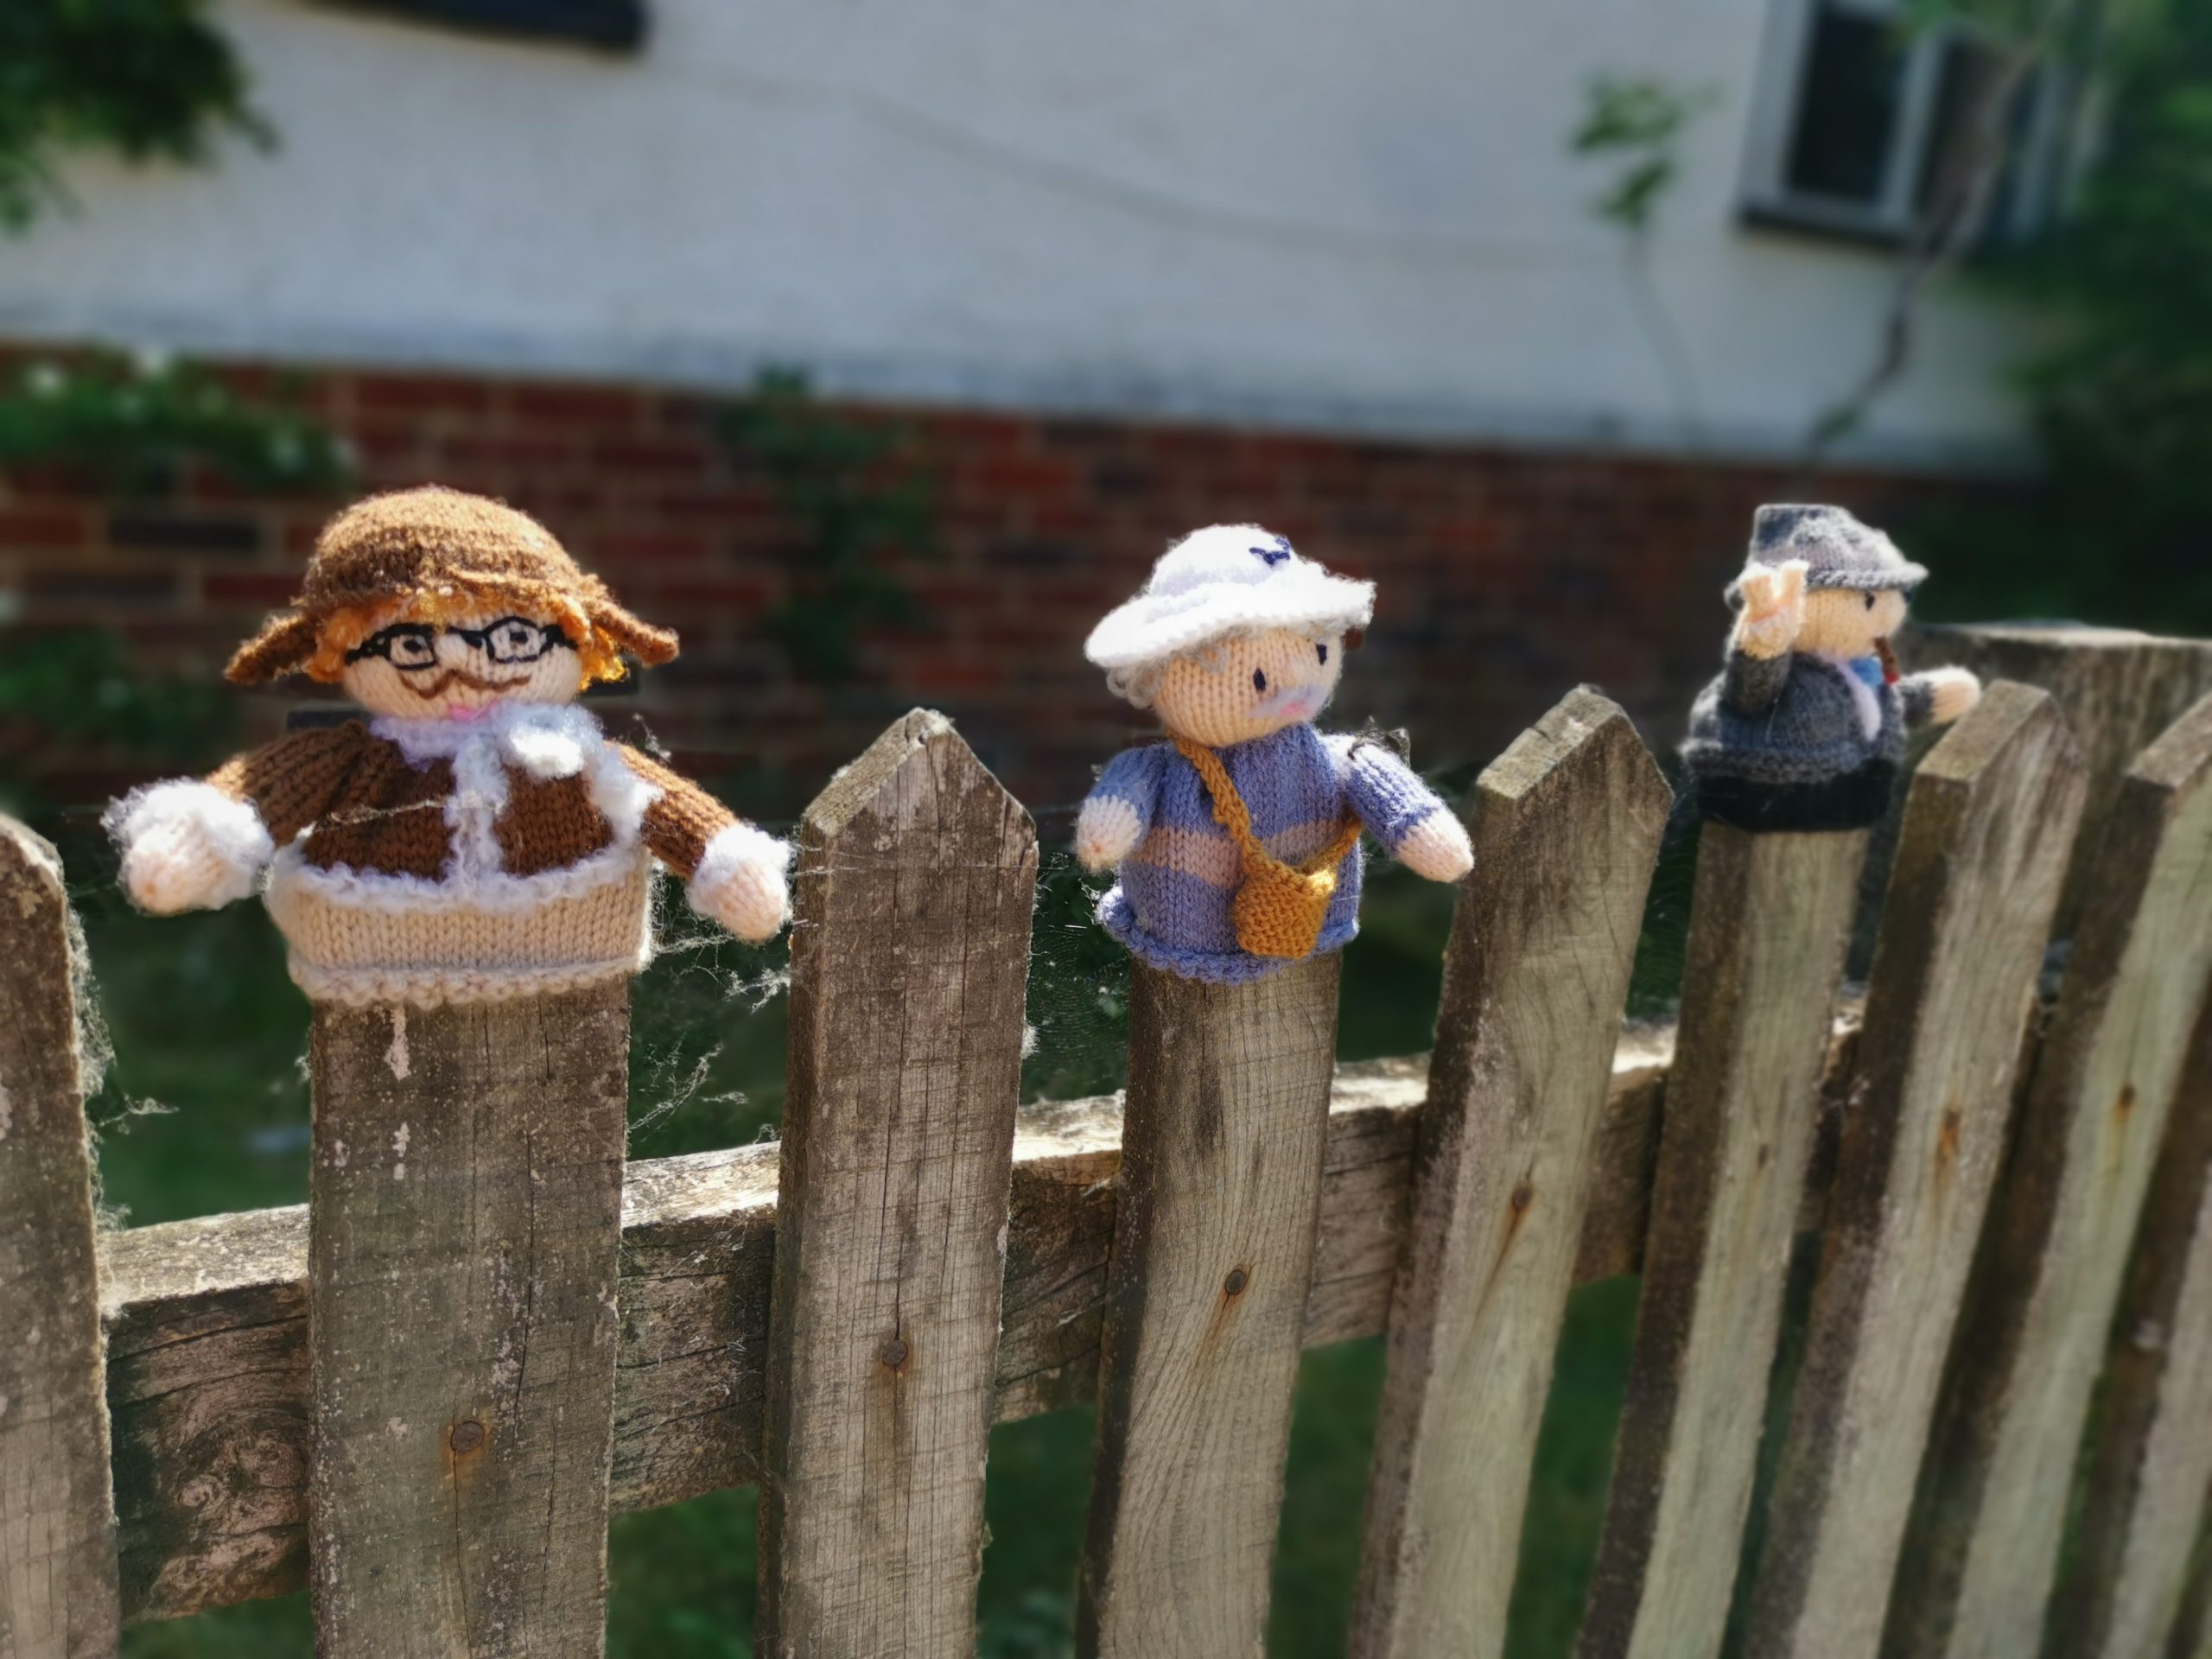 East Hendred village knitted characters sat on fence posts